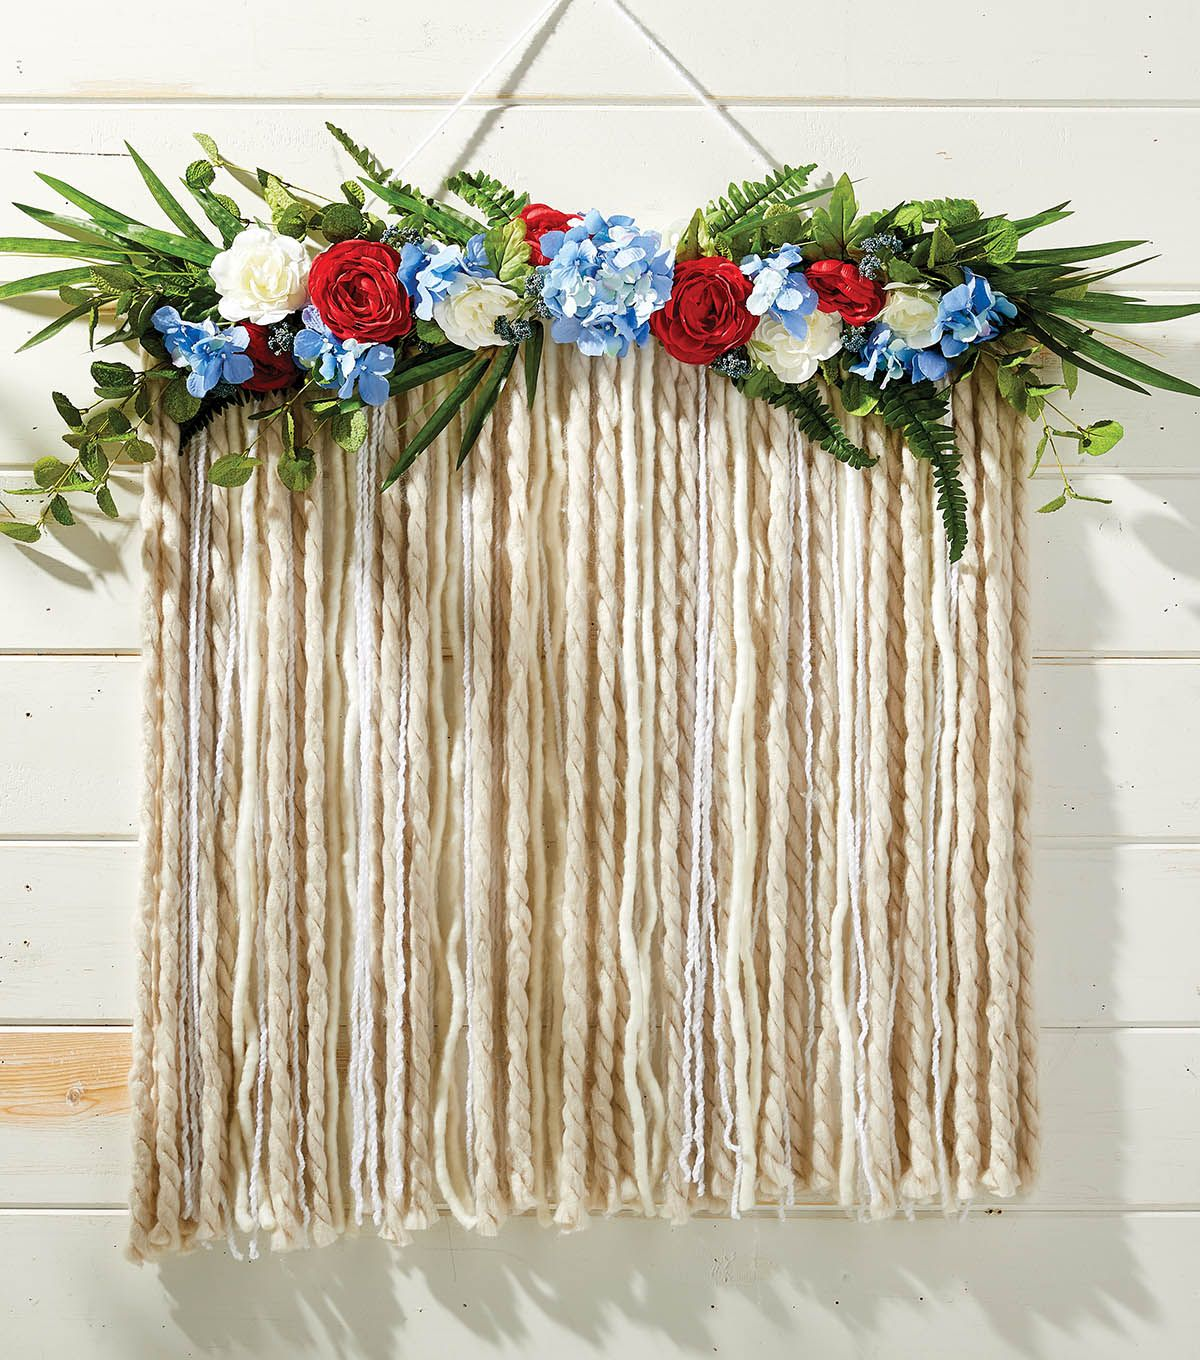 How to Make A Floral Garland Backdrop Garland backdrops